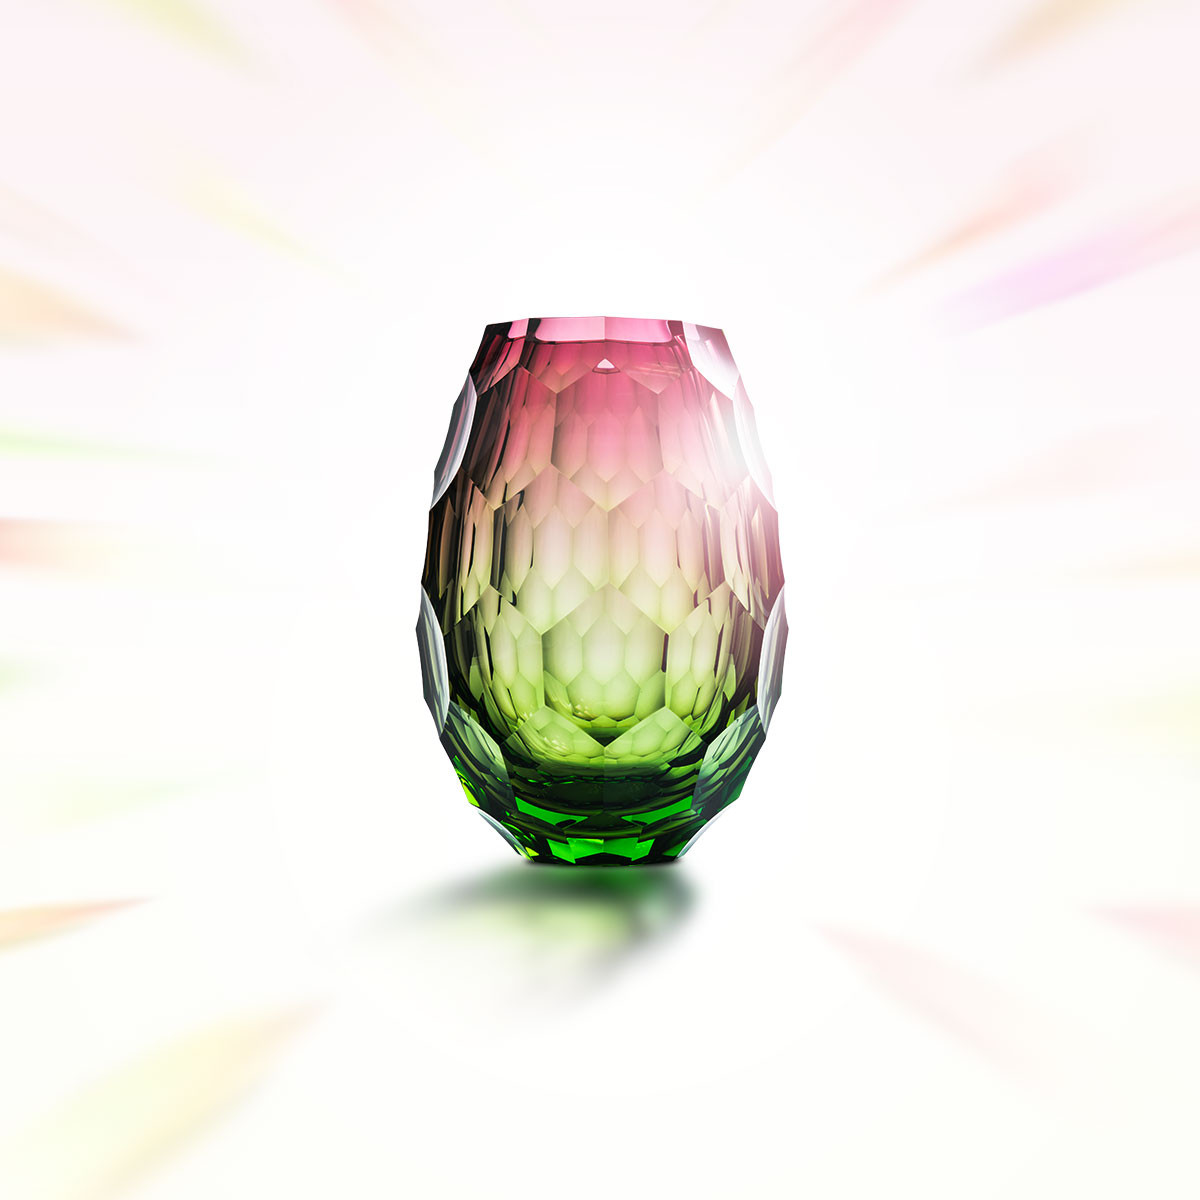 vision glass vases wholesale of welcome to the moser glassworks moser glass com for fb share